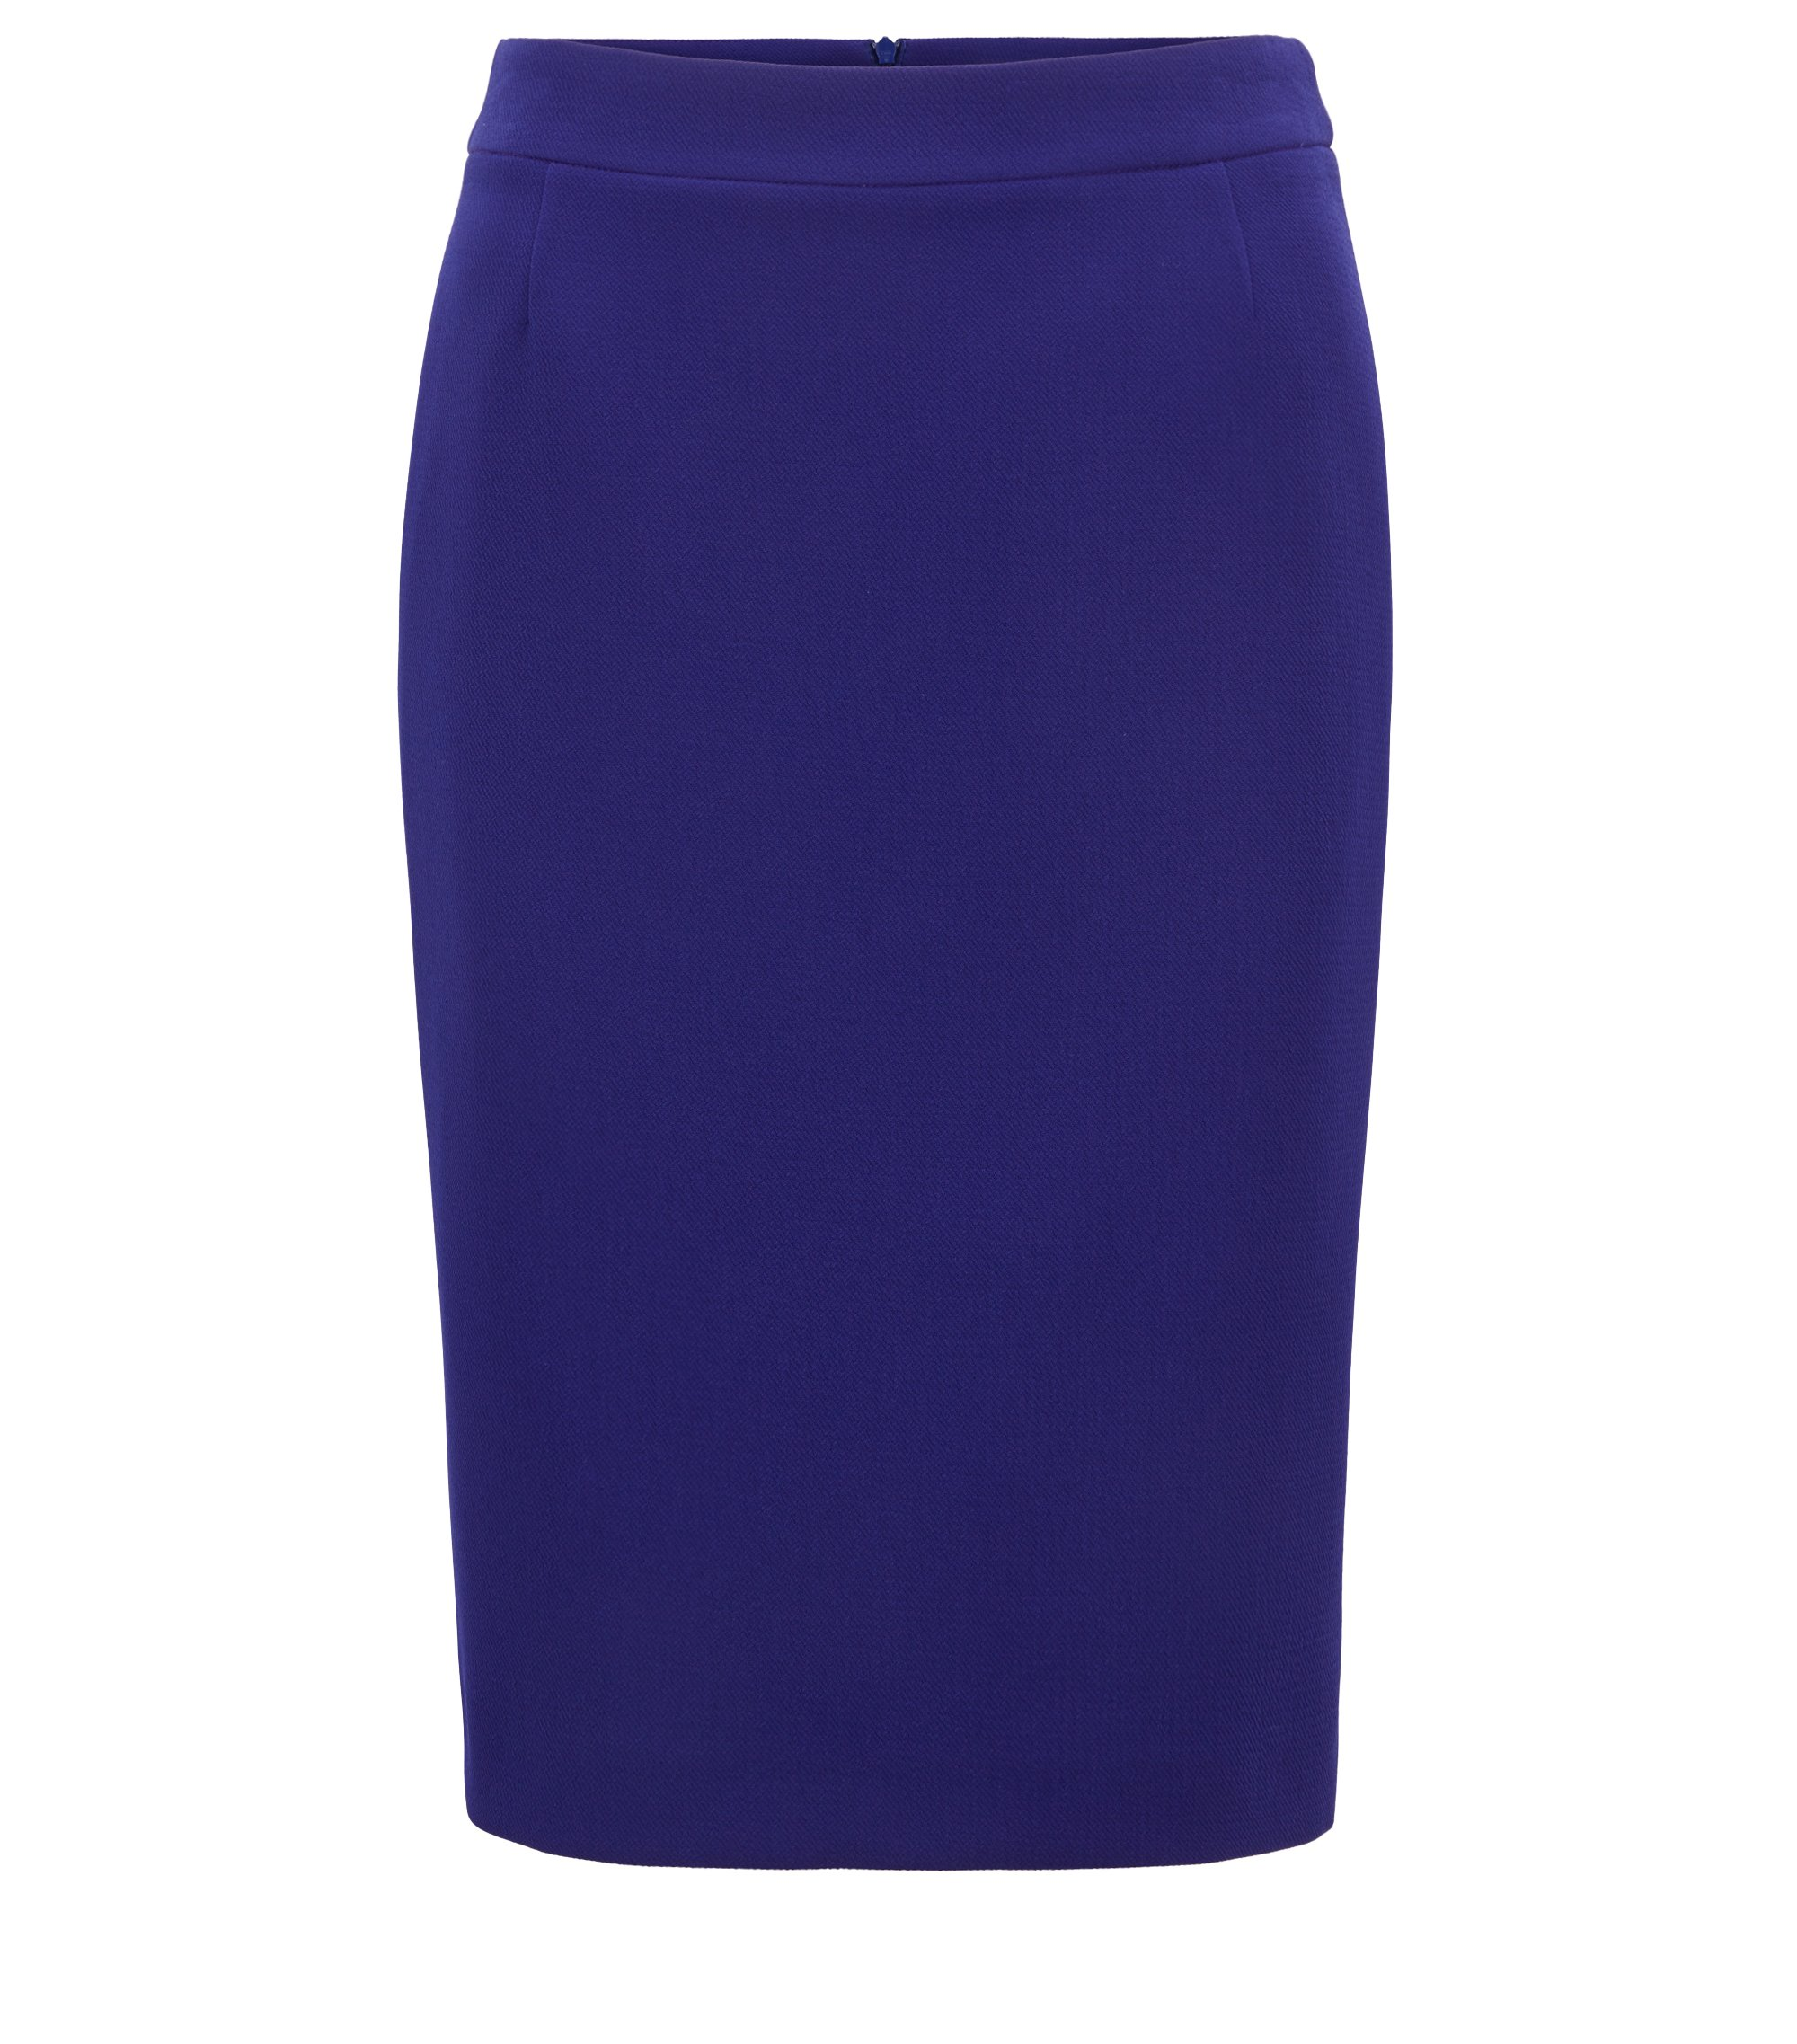 Regular-fit pencil skirt in structured crepe, Purple